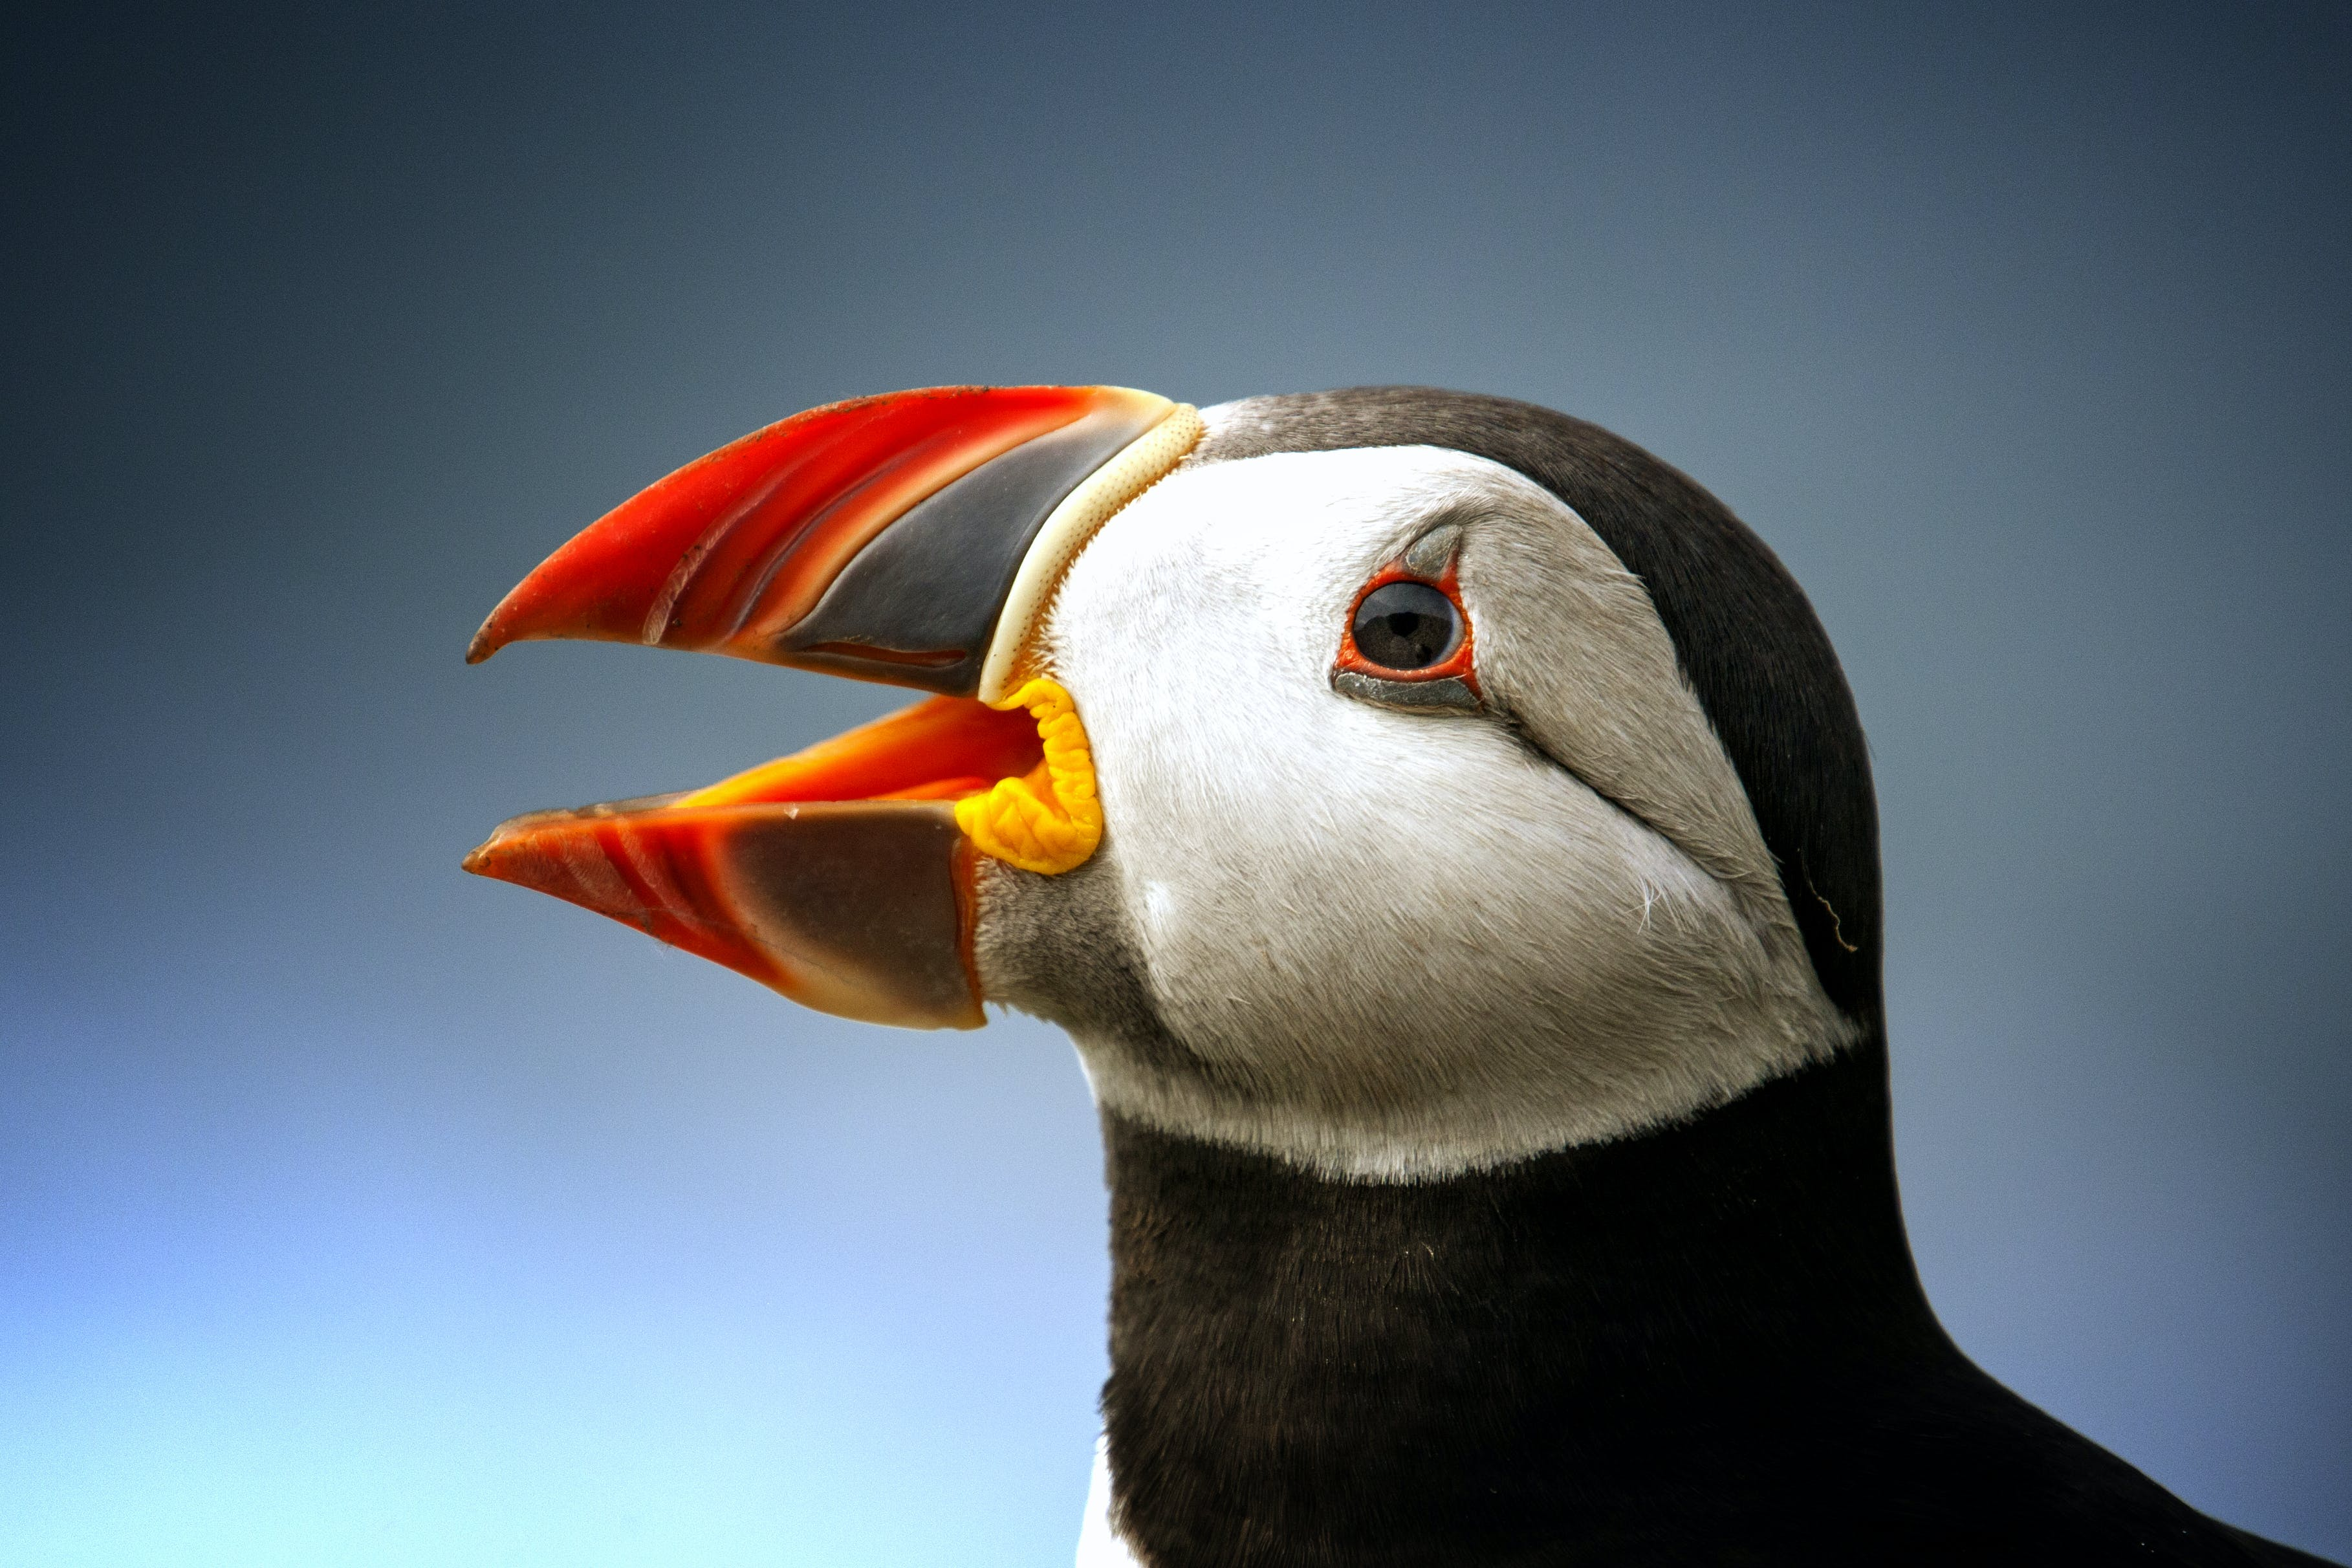 Black Atlantic Puffin